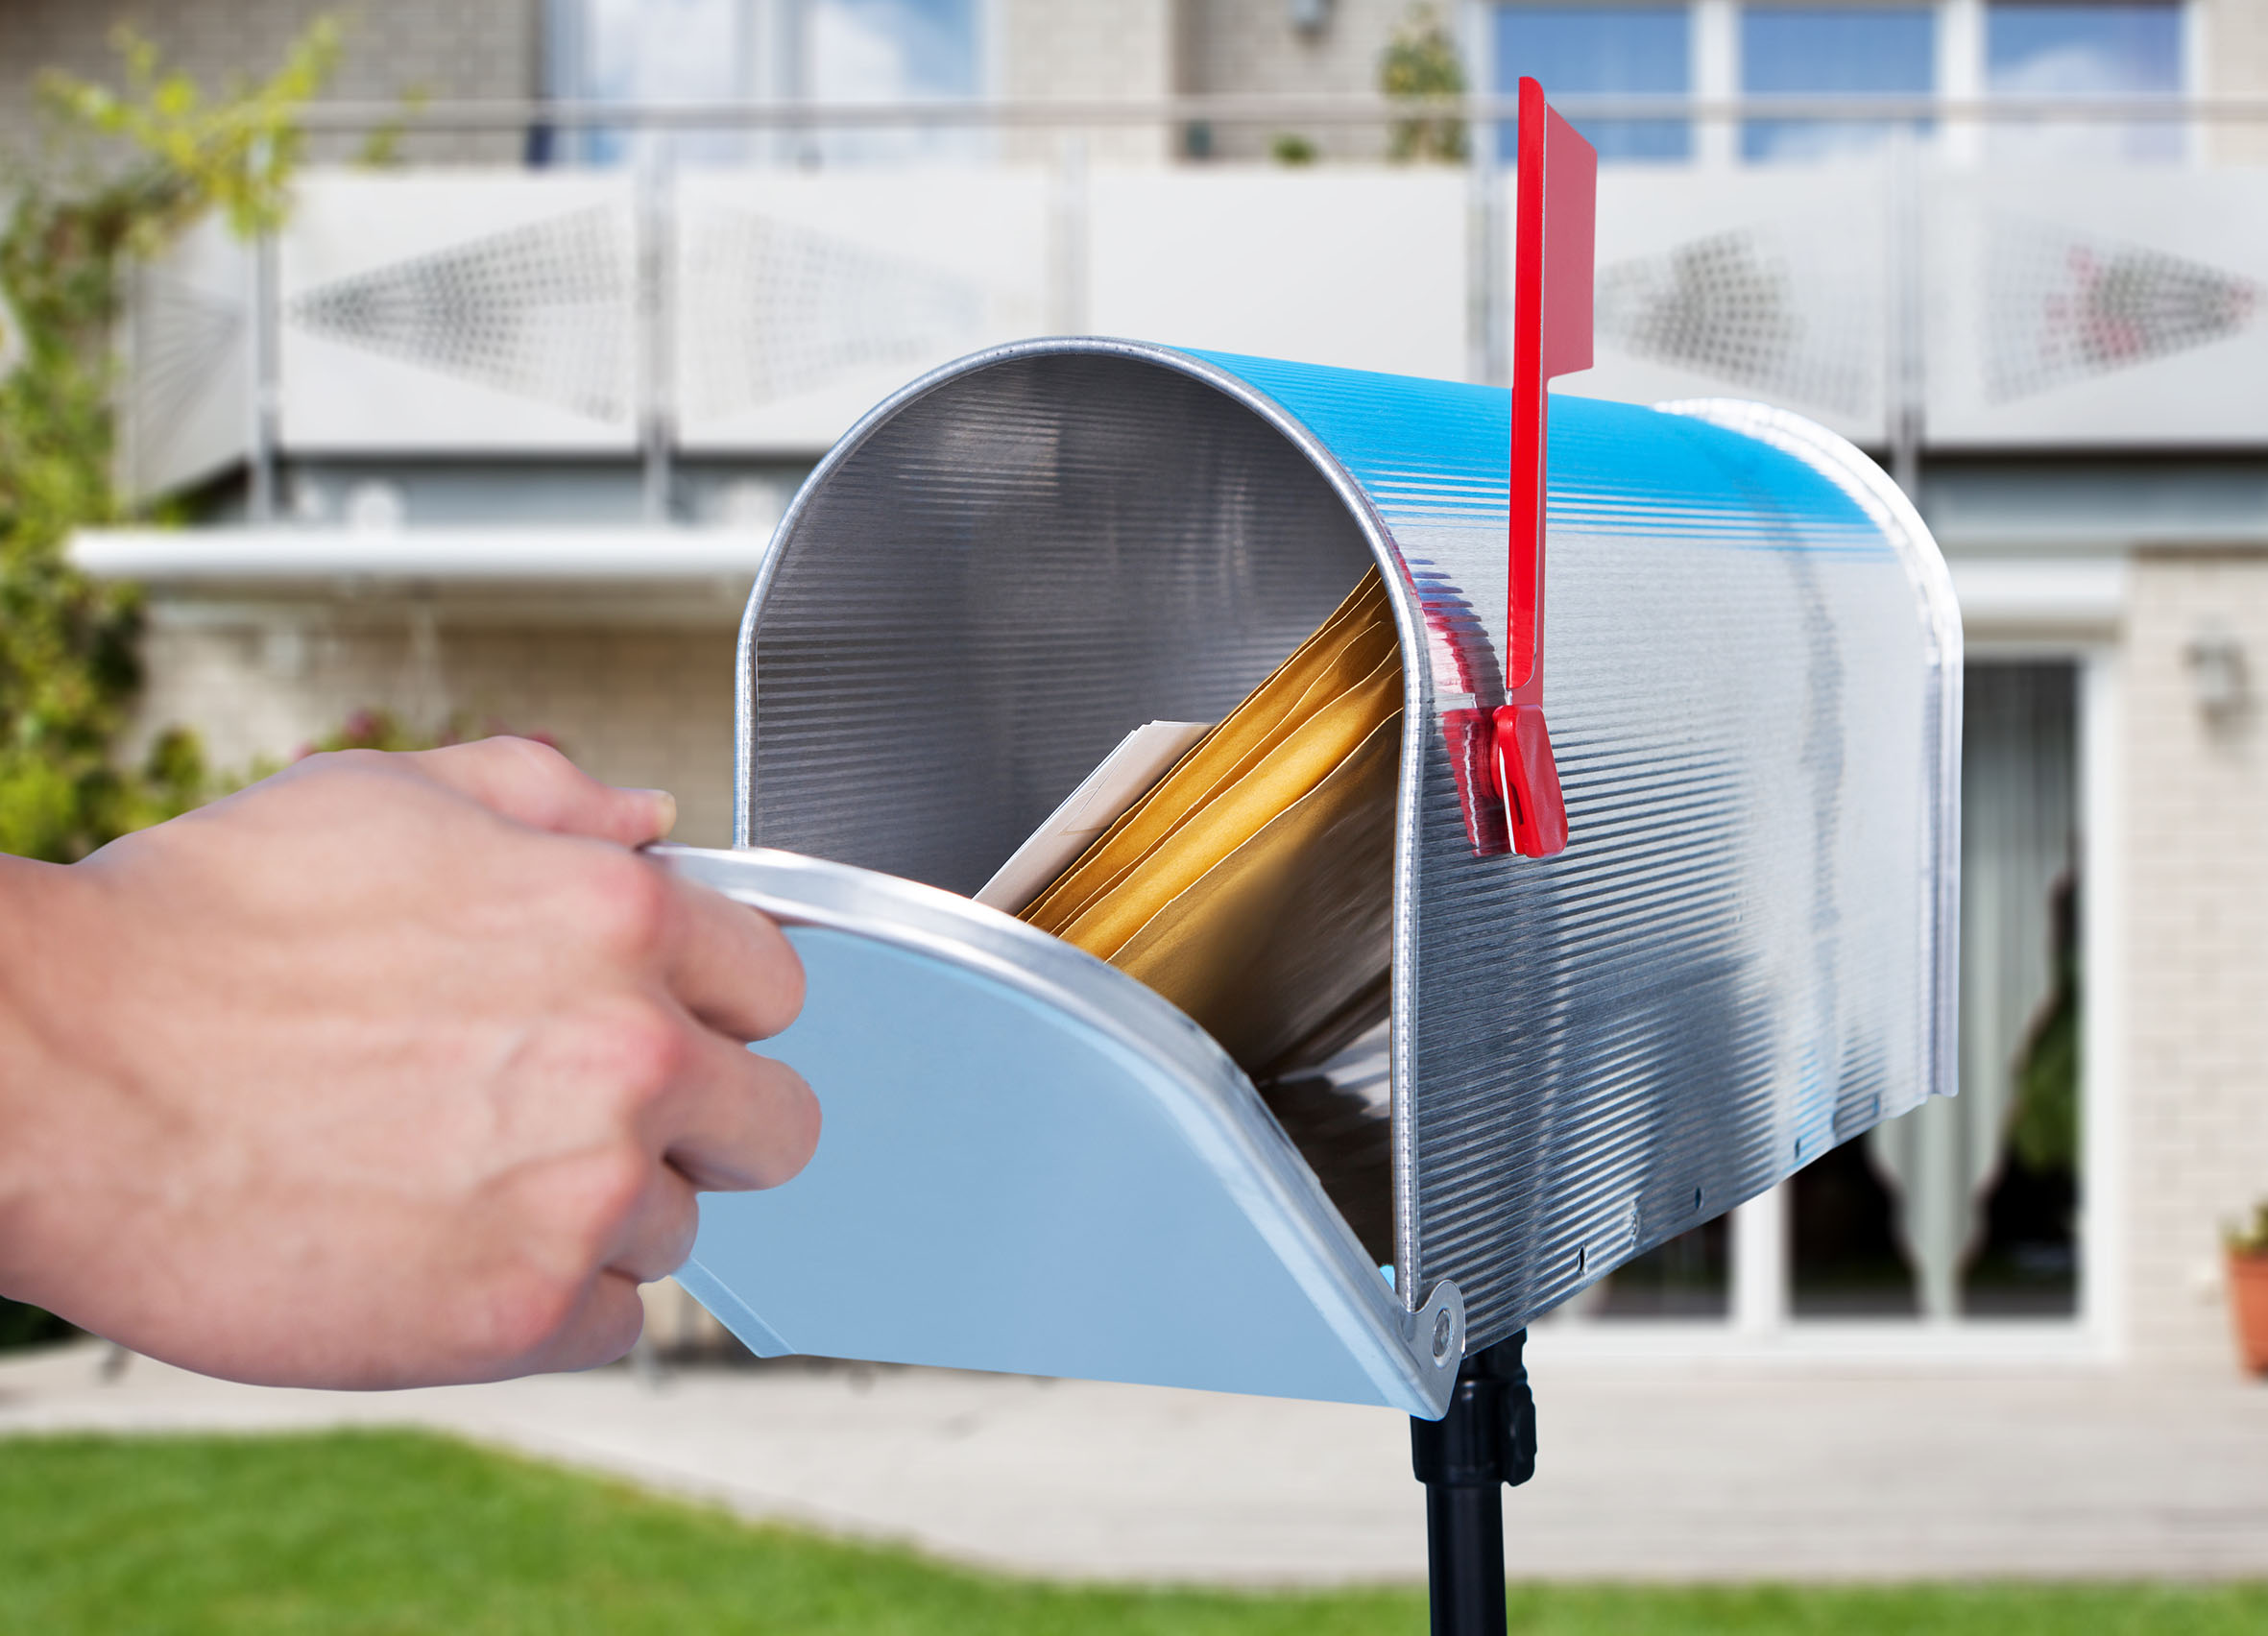 Pre-Shop Activation  Direct Mail (Education, Samples, Coupons, etc.) and/or Digital (Email Campaign)  Influencer or Consumer Targeting  Customized consumer databases developed around key demographics  Access to all HCPs, DDS, and Veterinarians